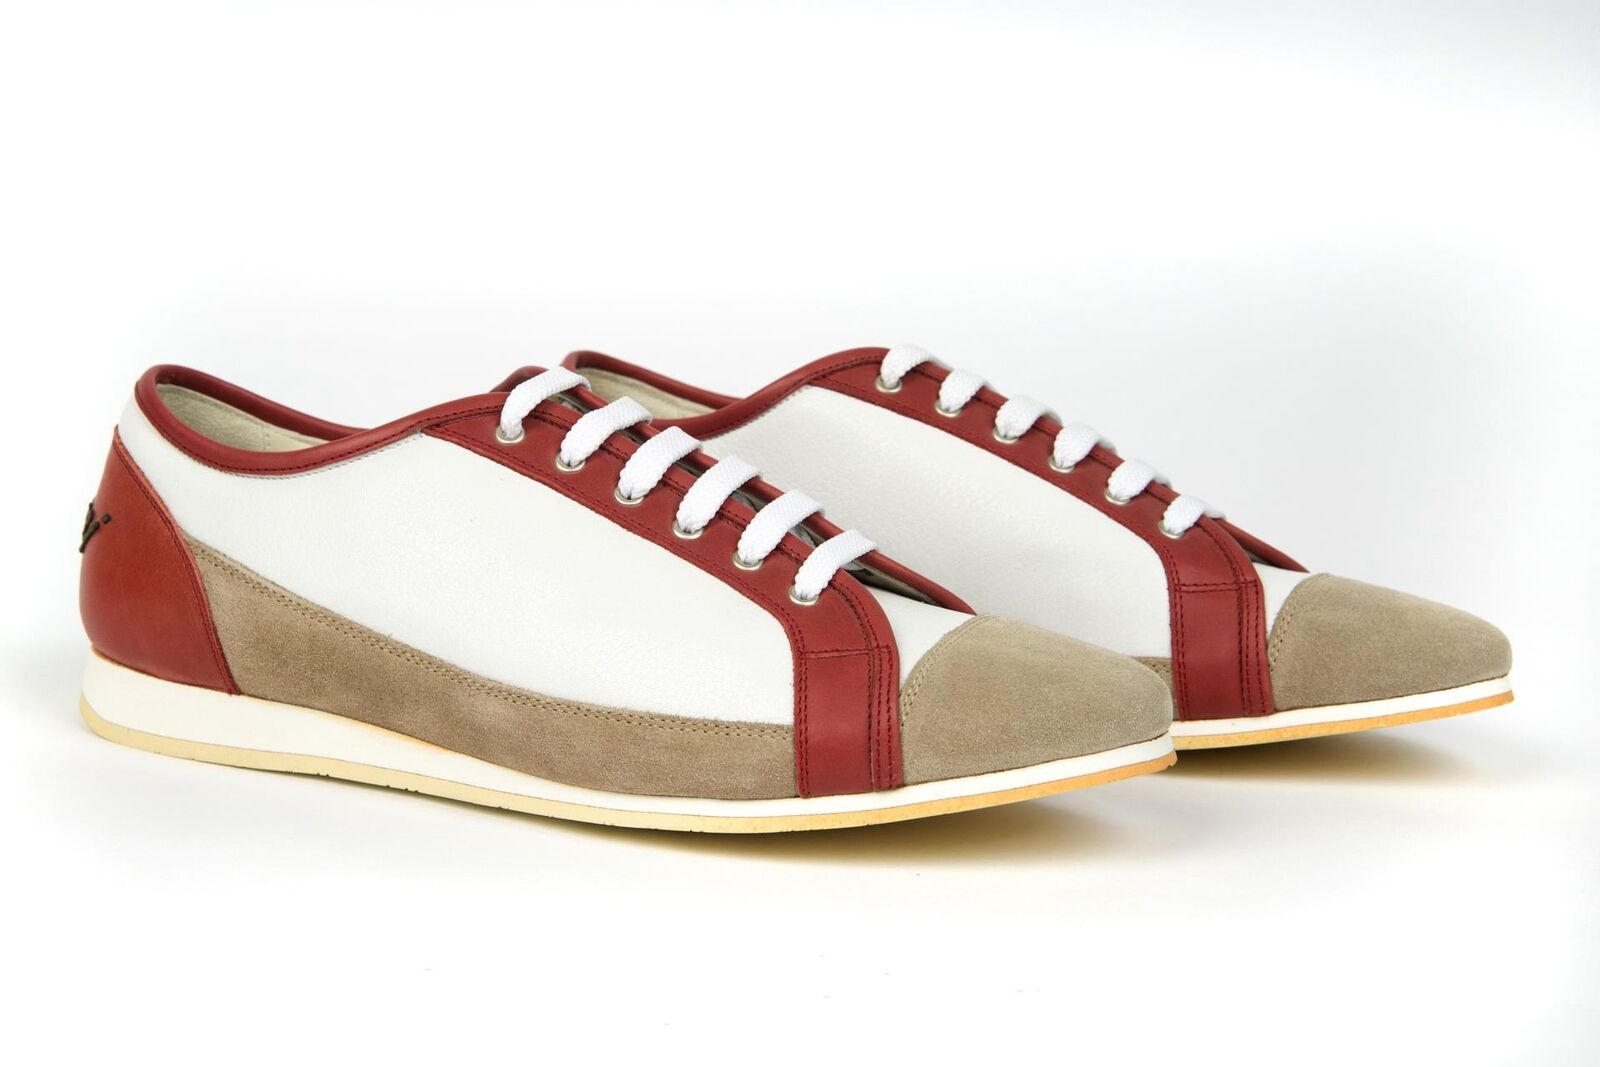 Brioni NIB Red White Beige Leather Suede Fashion Sneakers shoes 41 EU 8 US